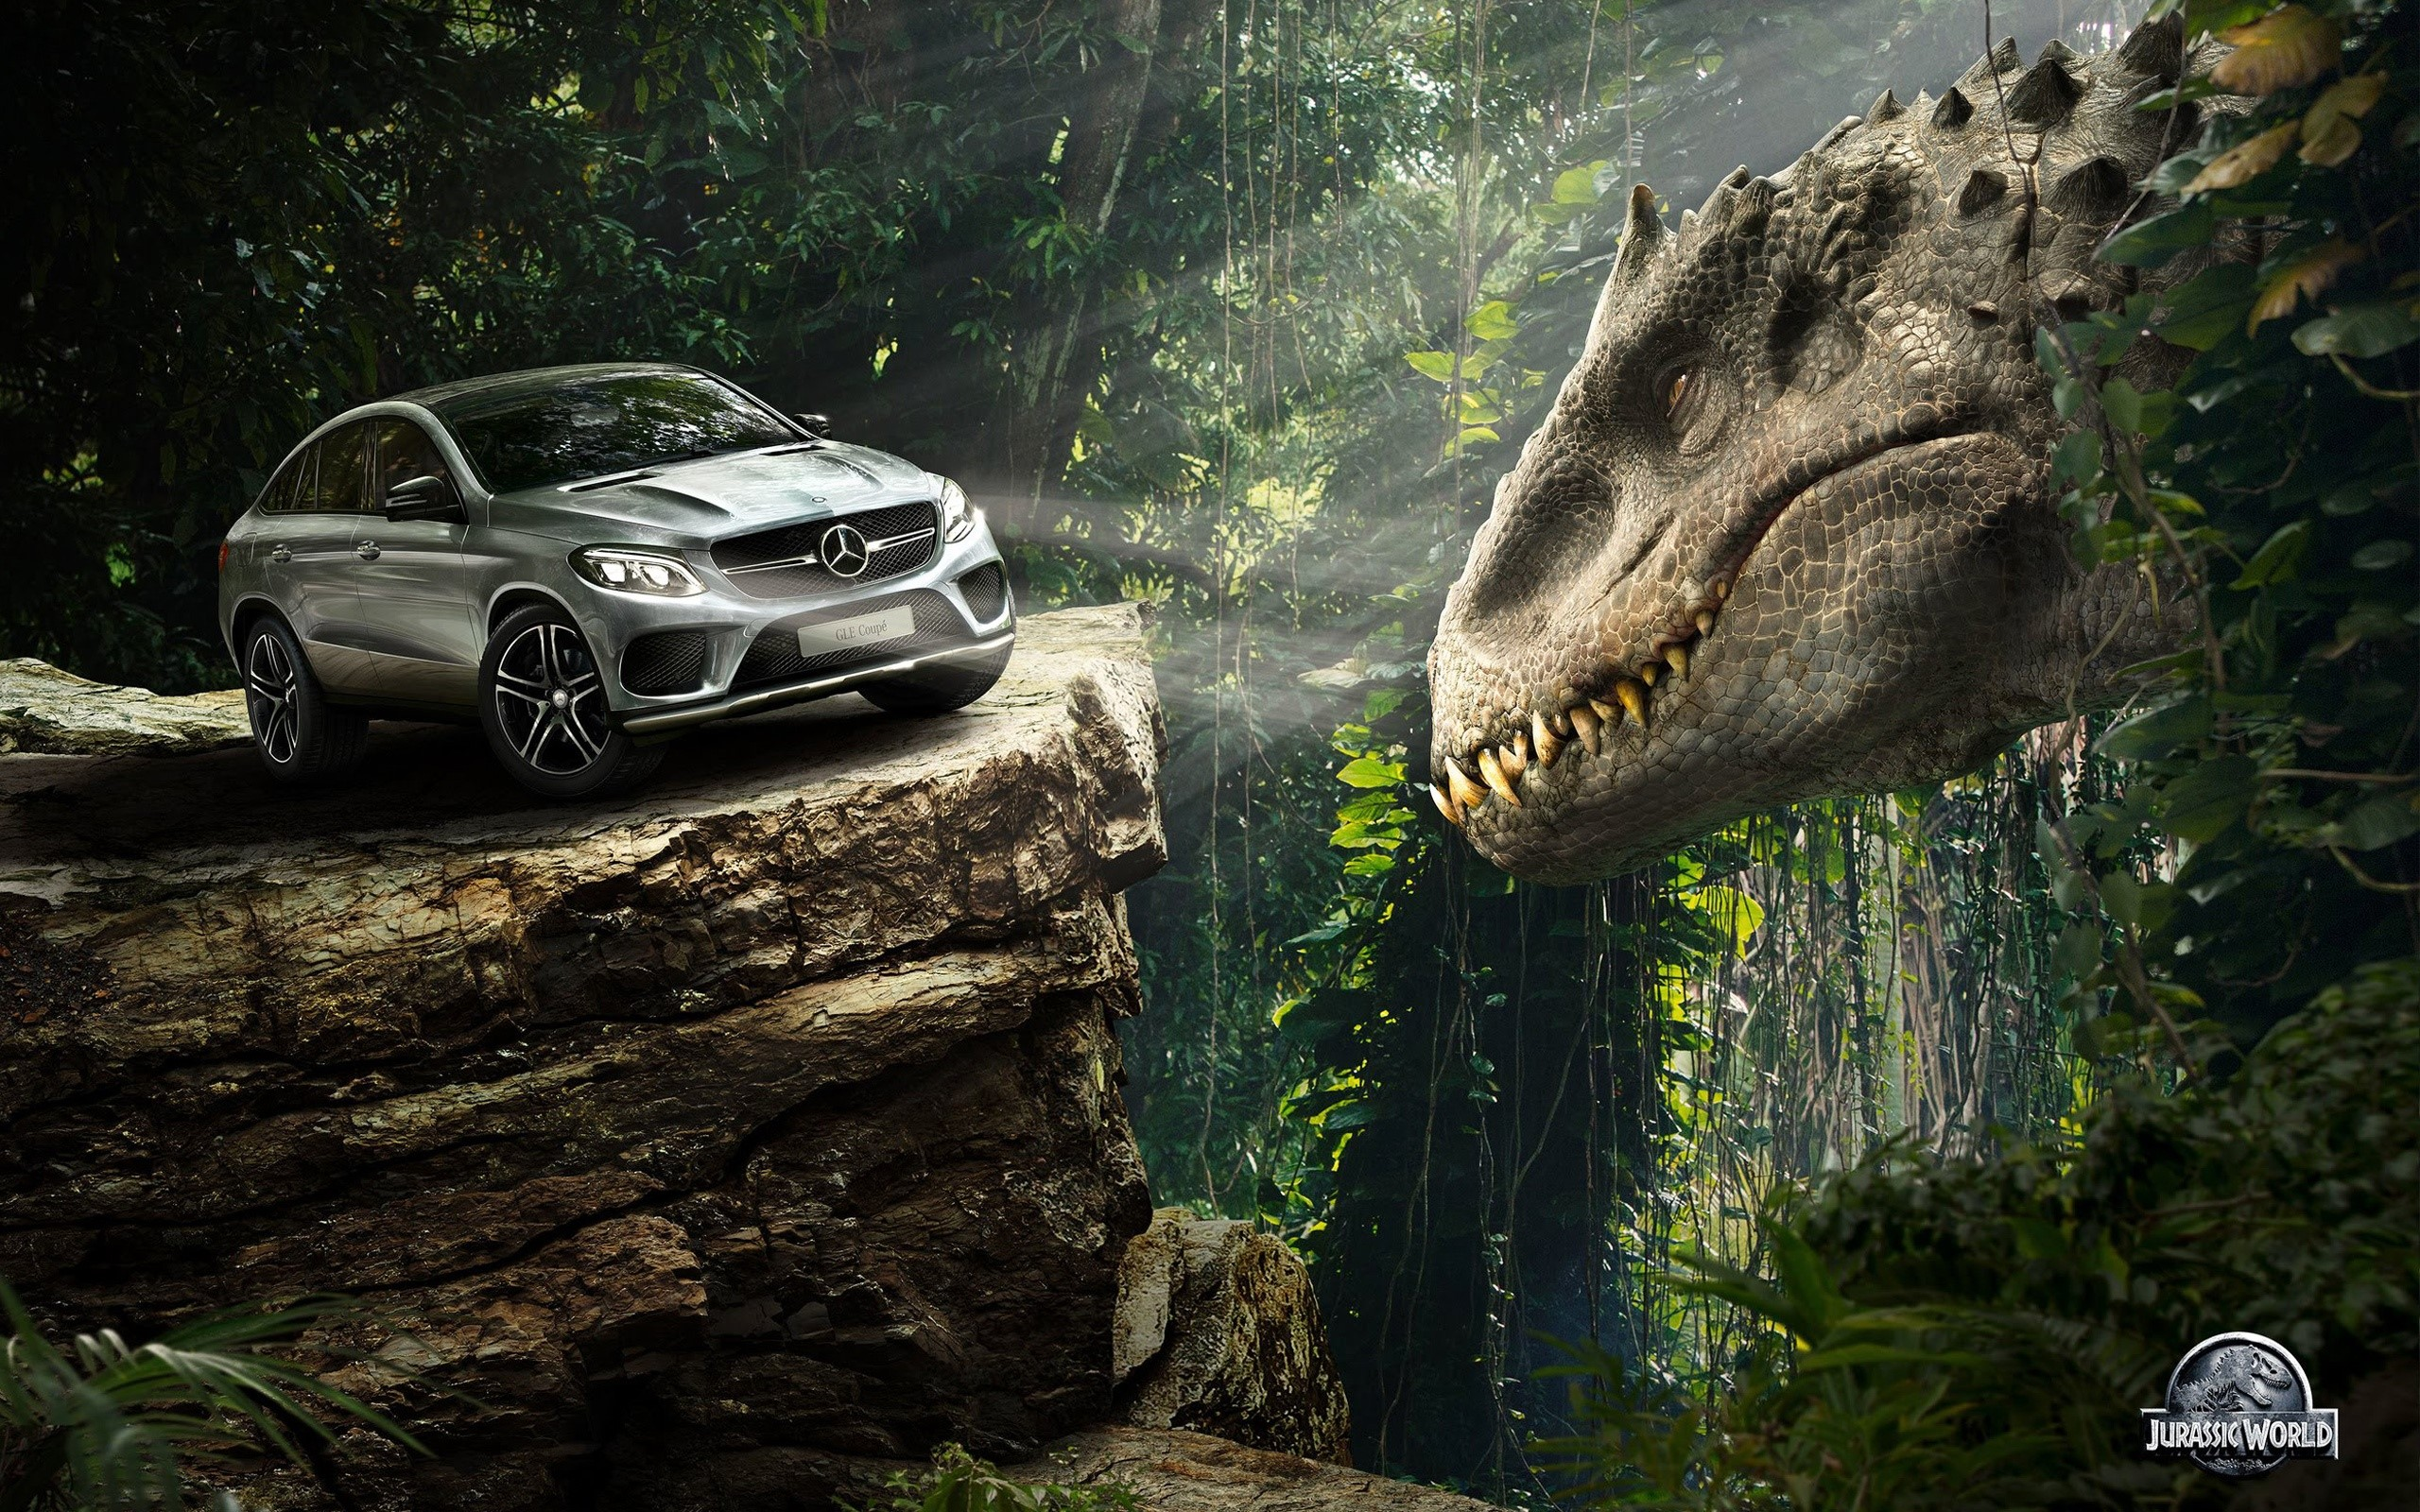 Wallpaper Mercedes Benz GLE Coupe in Jurassic World